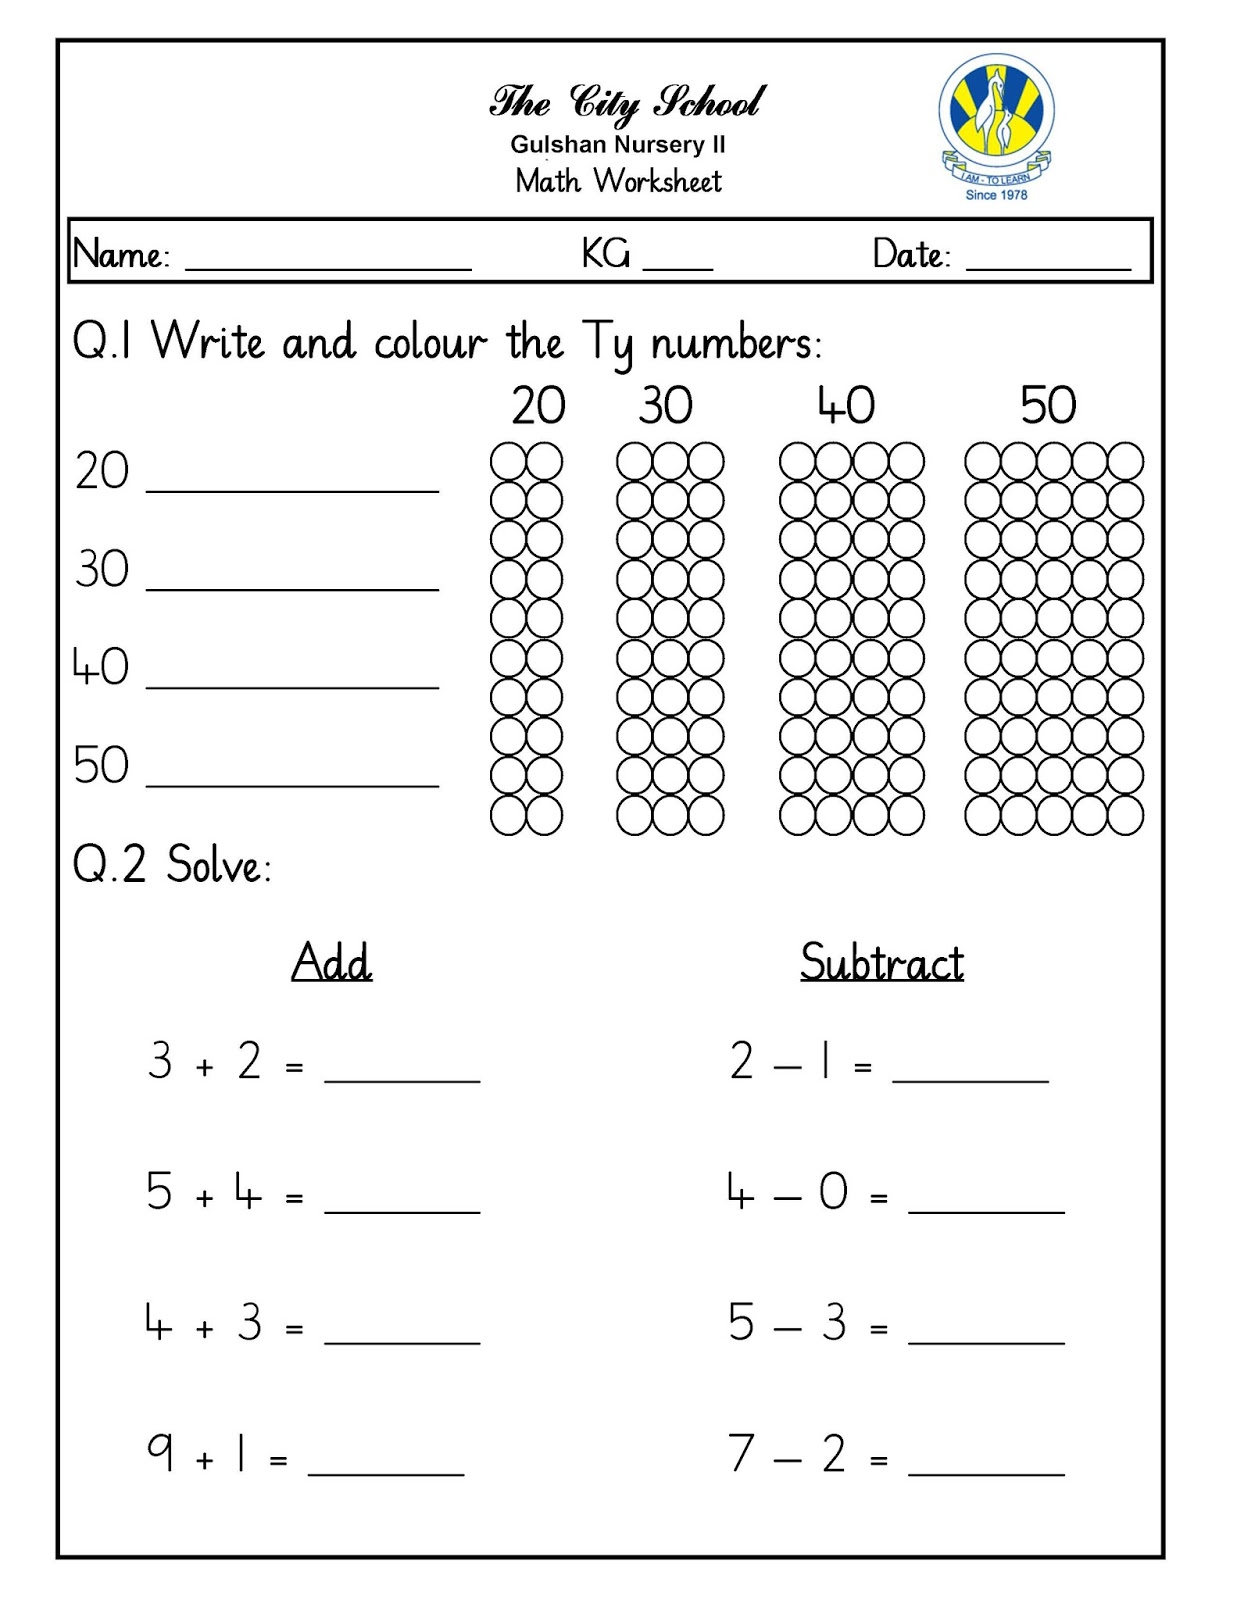 Sr Gulshan The City Nursery Ii Math Kuwa English Worksheets